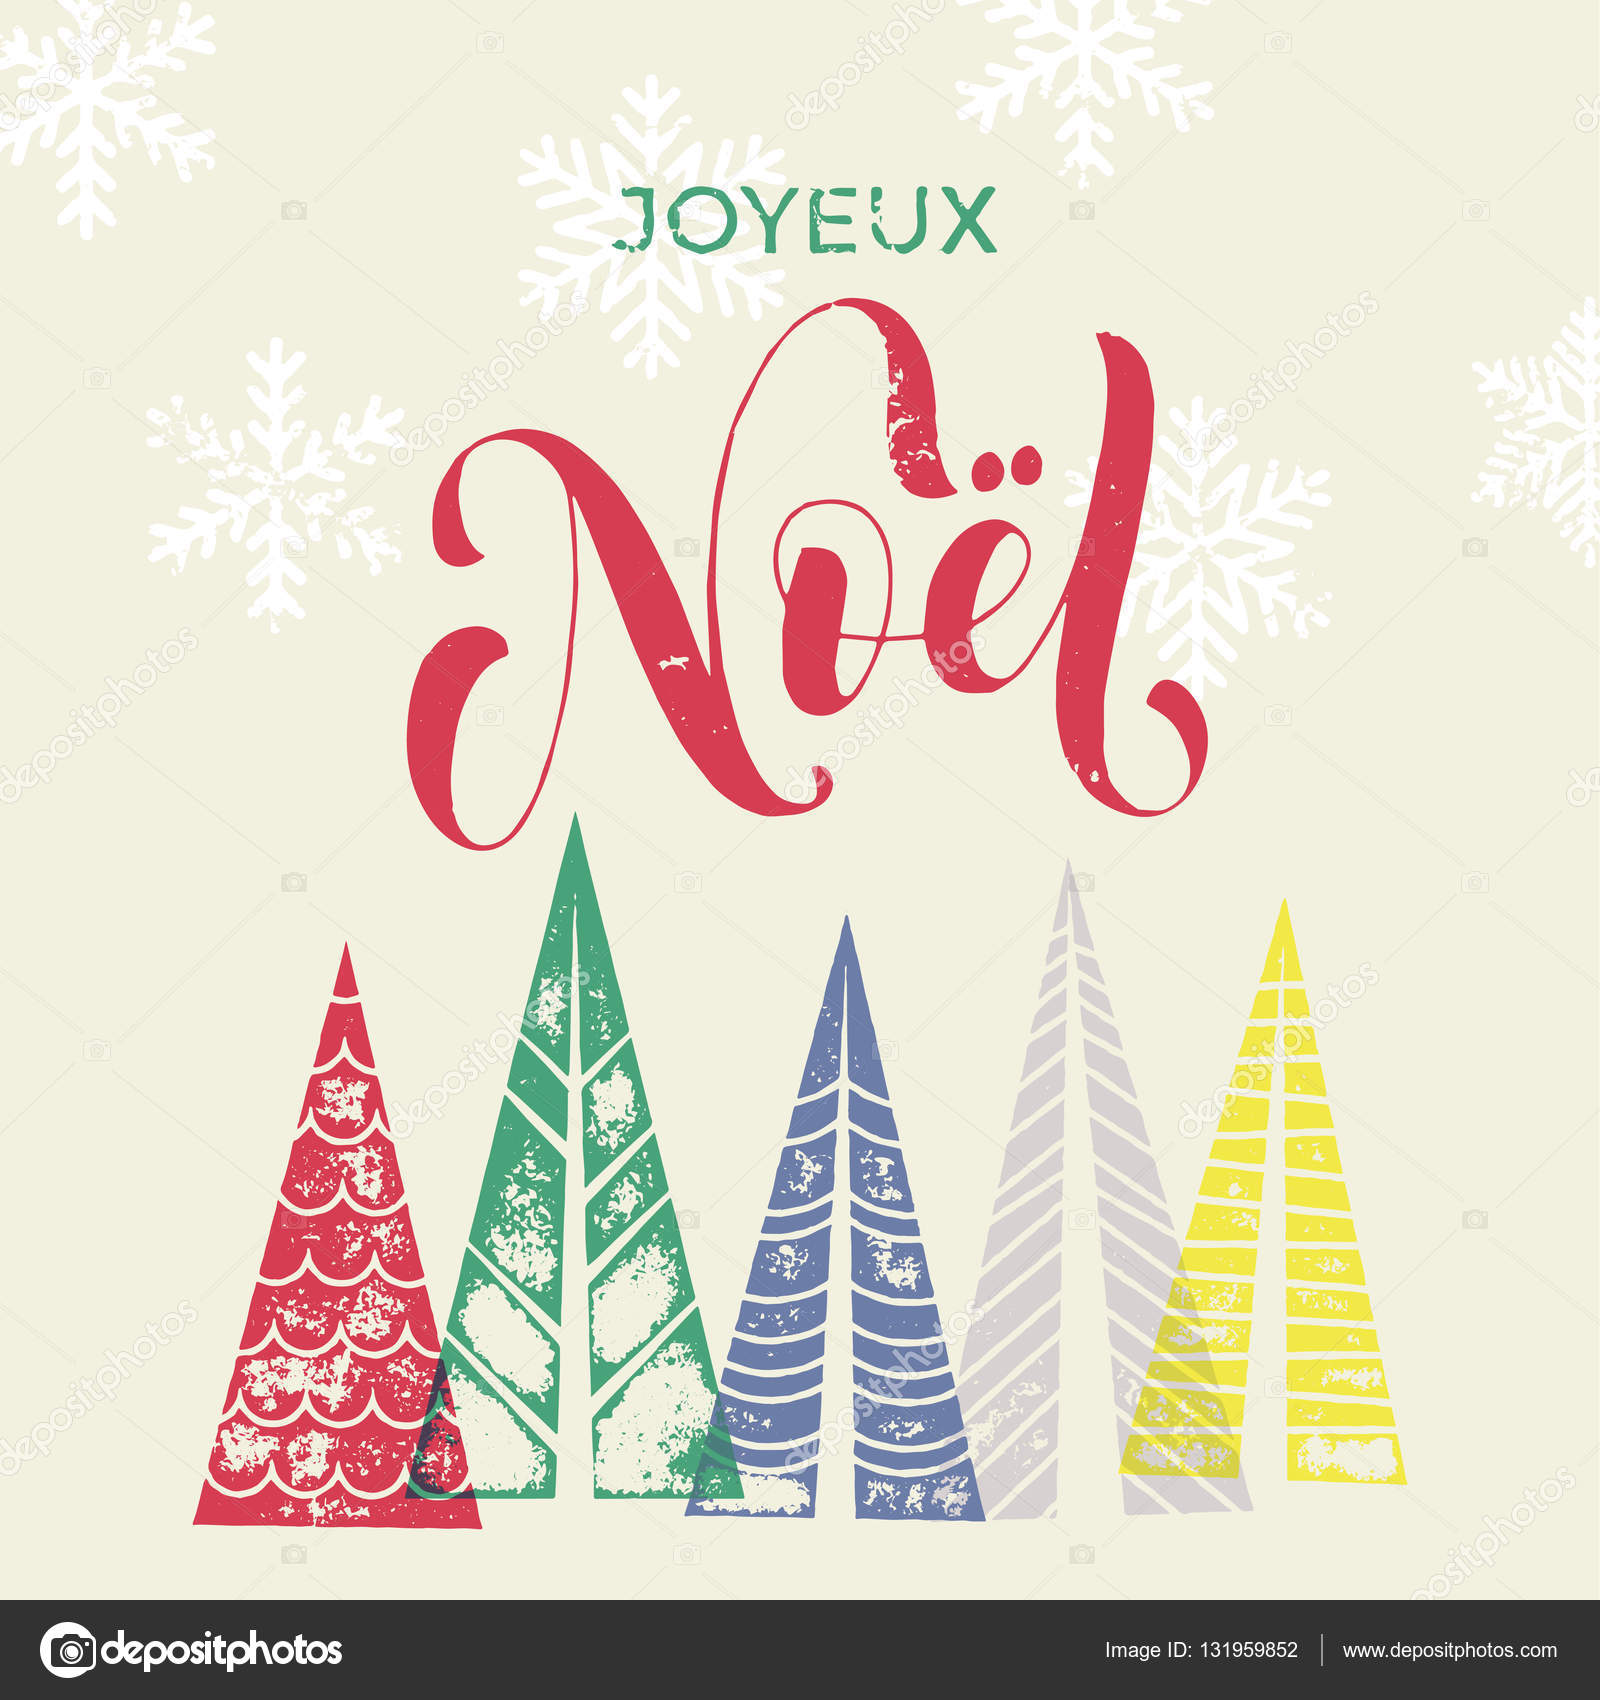 Winter forest background for french christmas greeting card stock winter forest background with christmas trees for french greeting card joyeux noel france merry christmas greeting card text with pine tree forest in m4hsunfo